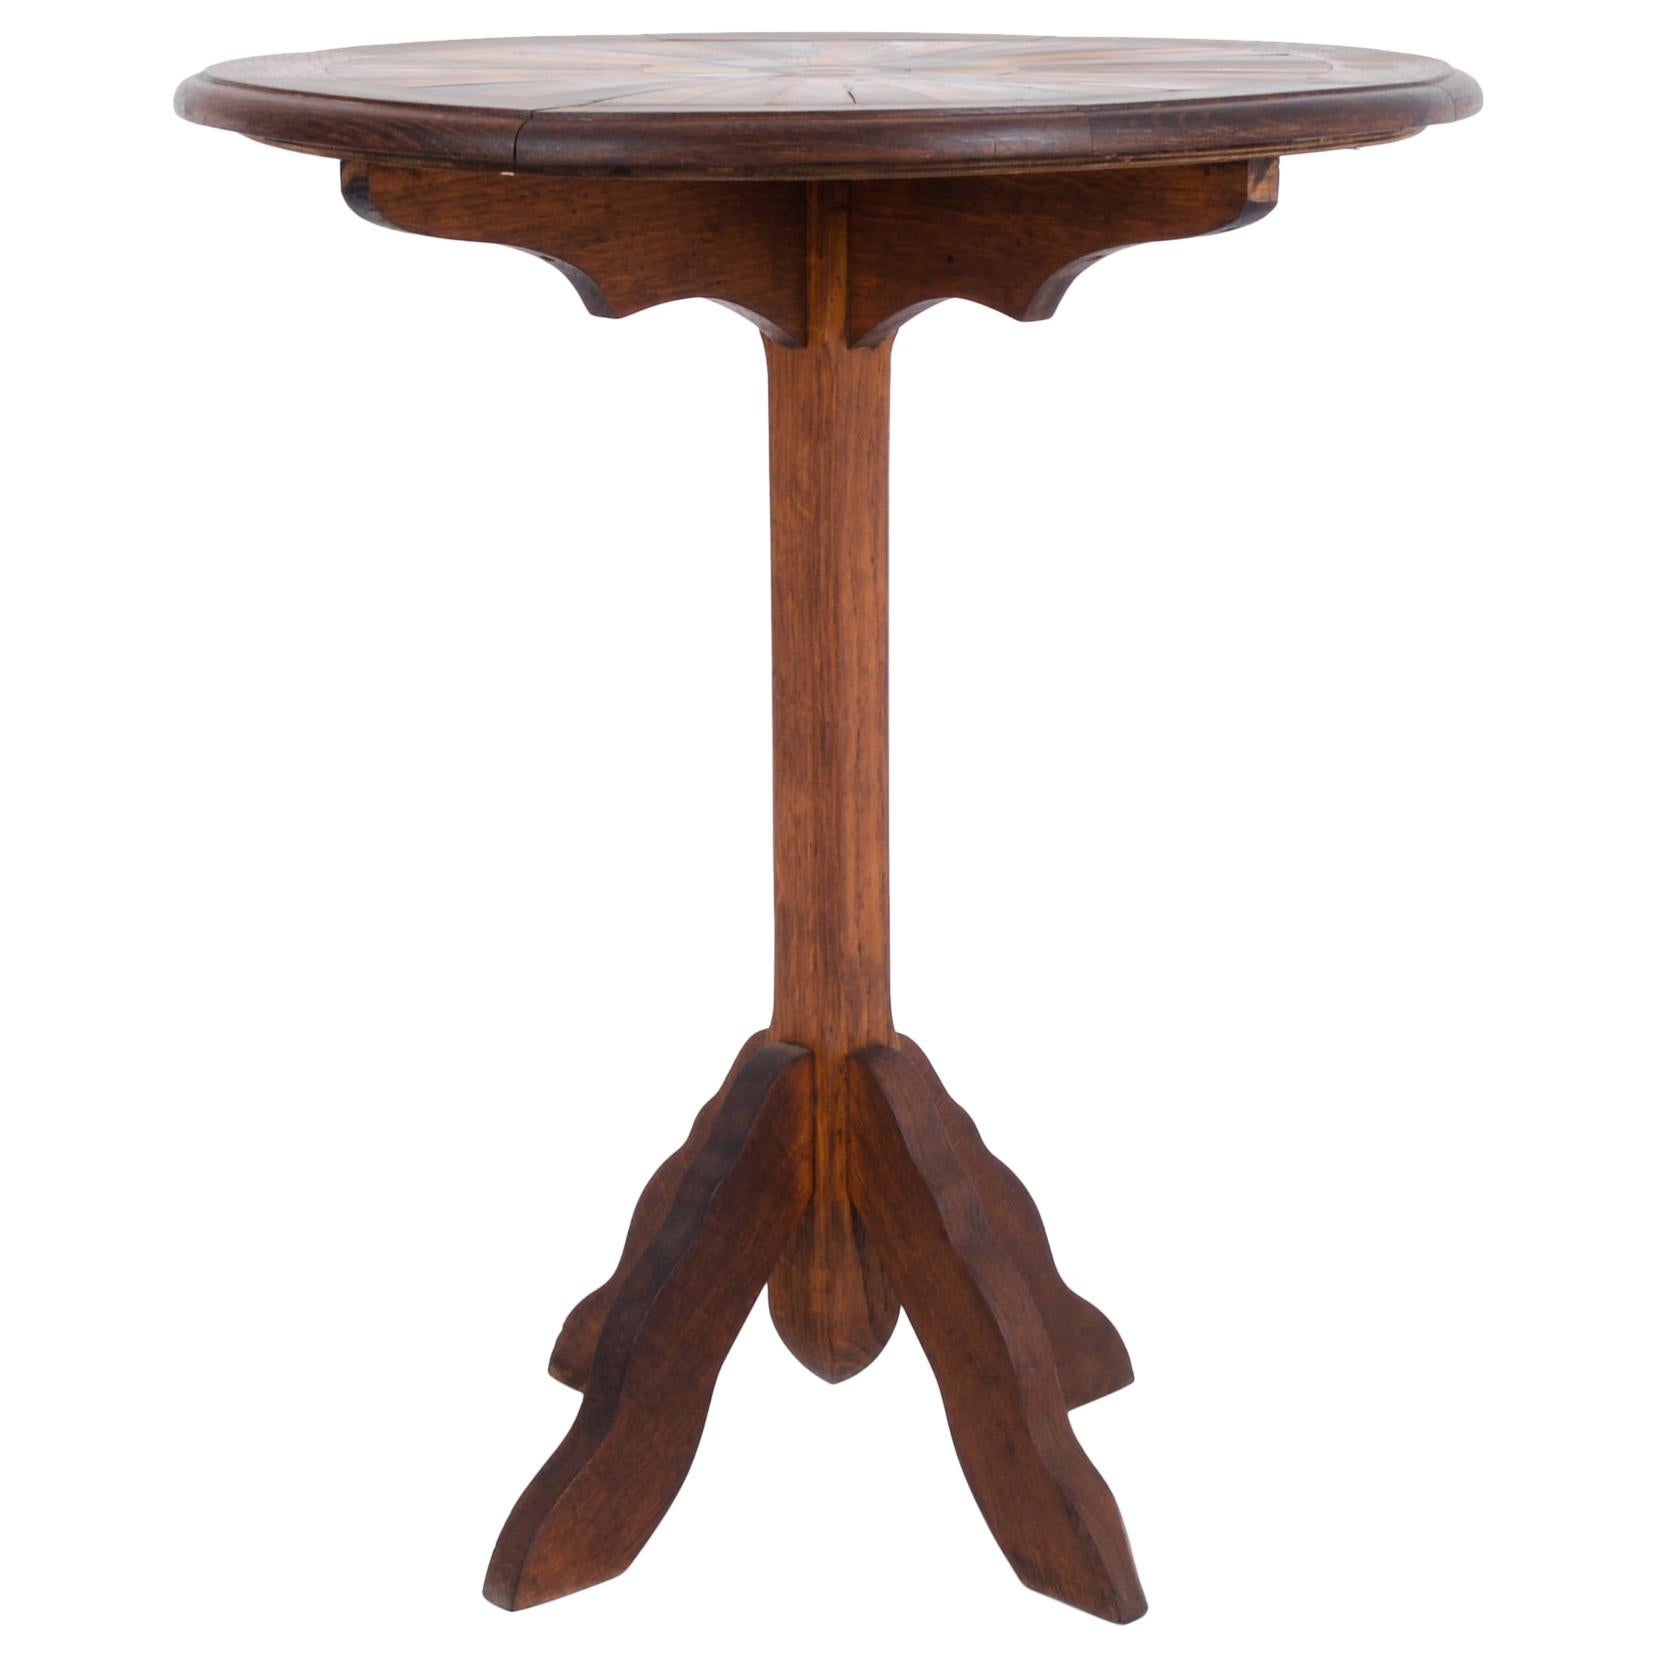 1900s French Marquetry Top Wooden Side Table